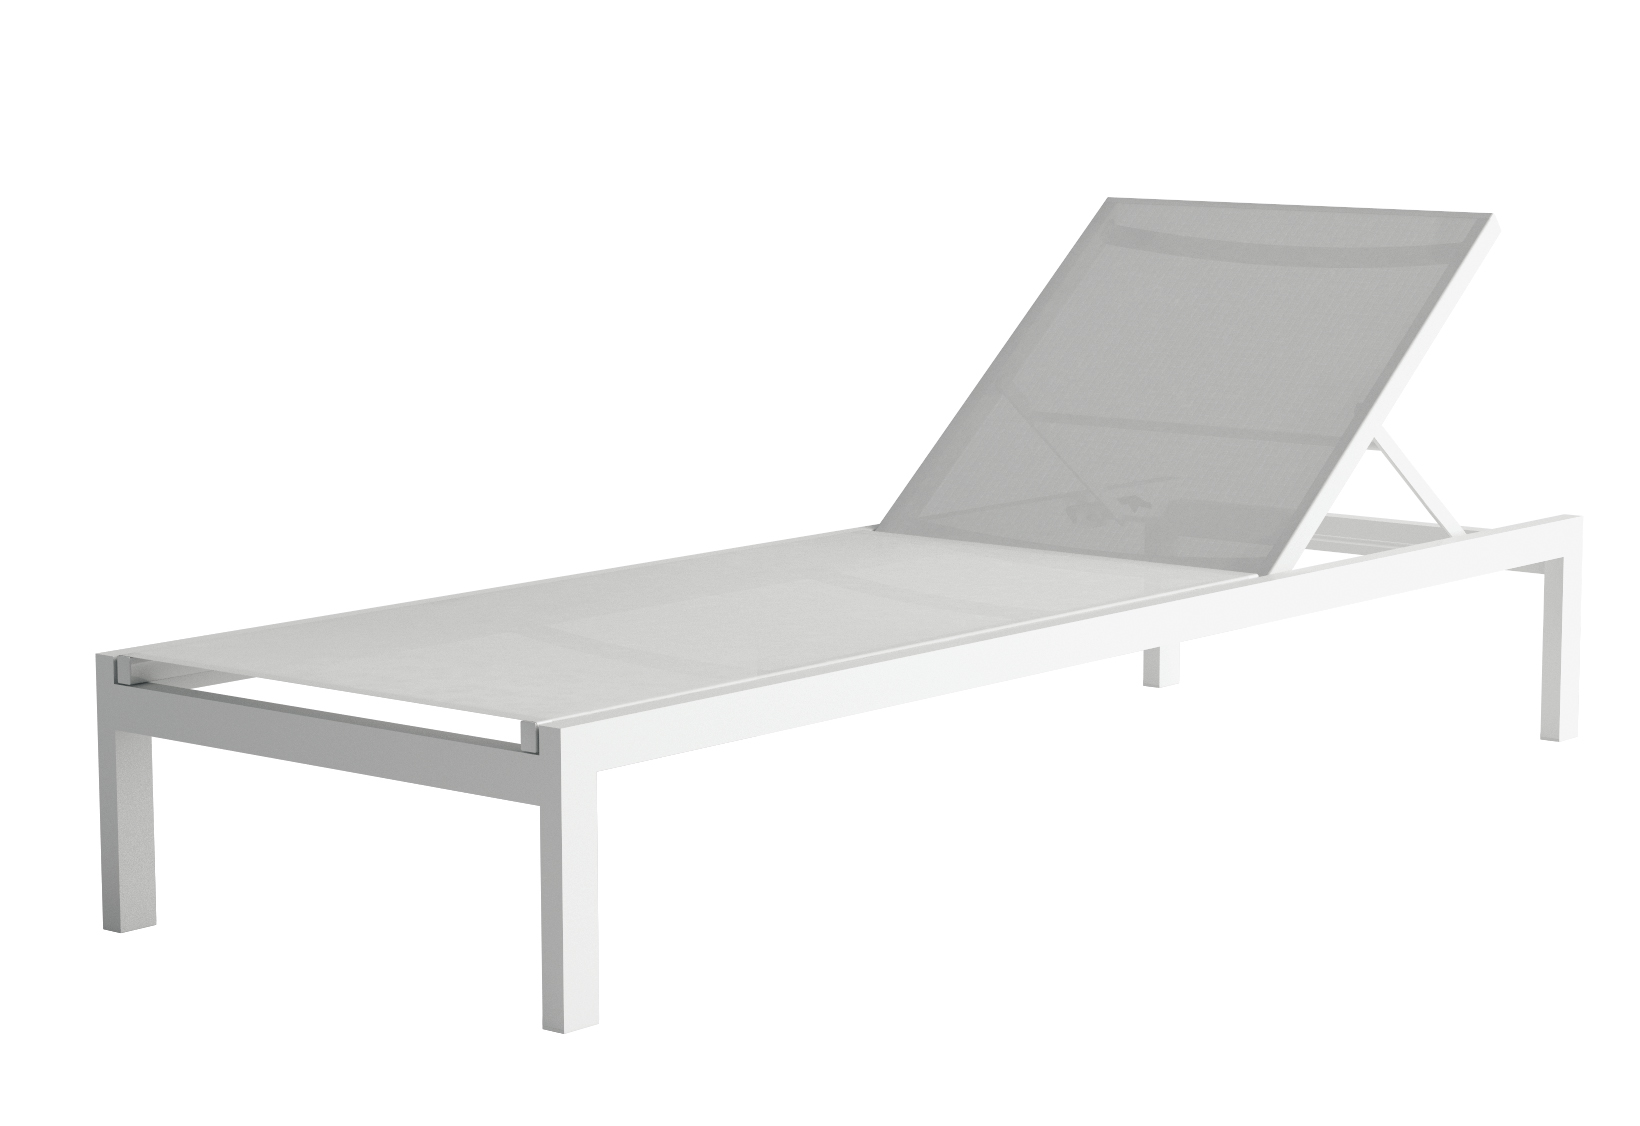 Meuble Milo Alinea Chaise Empilable Milo Coloris Gris Blanc